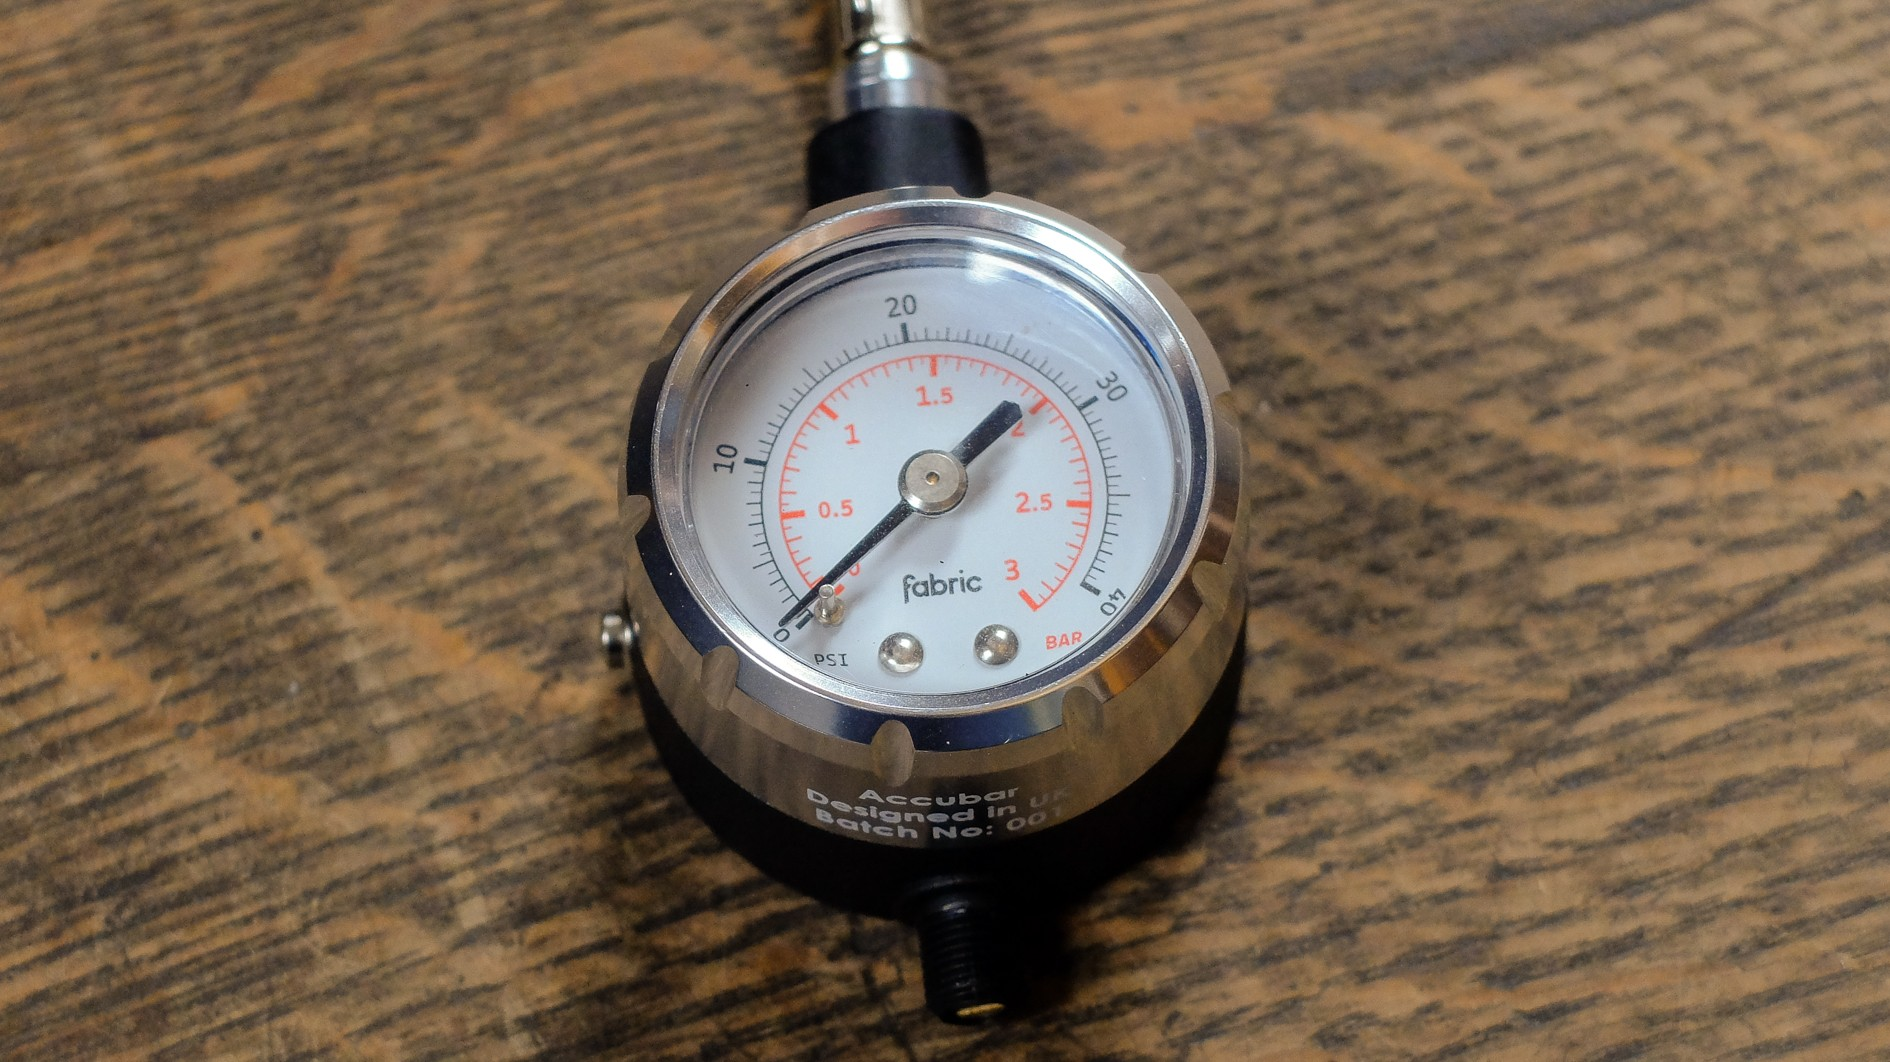 The gauge is built around super-high-quality internals